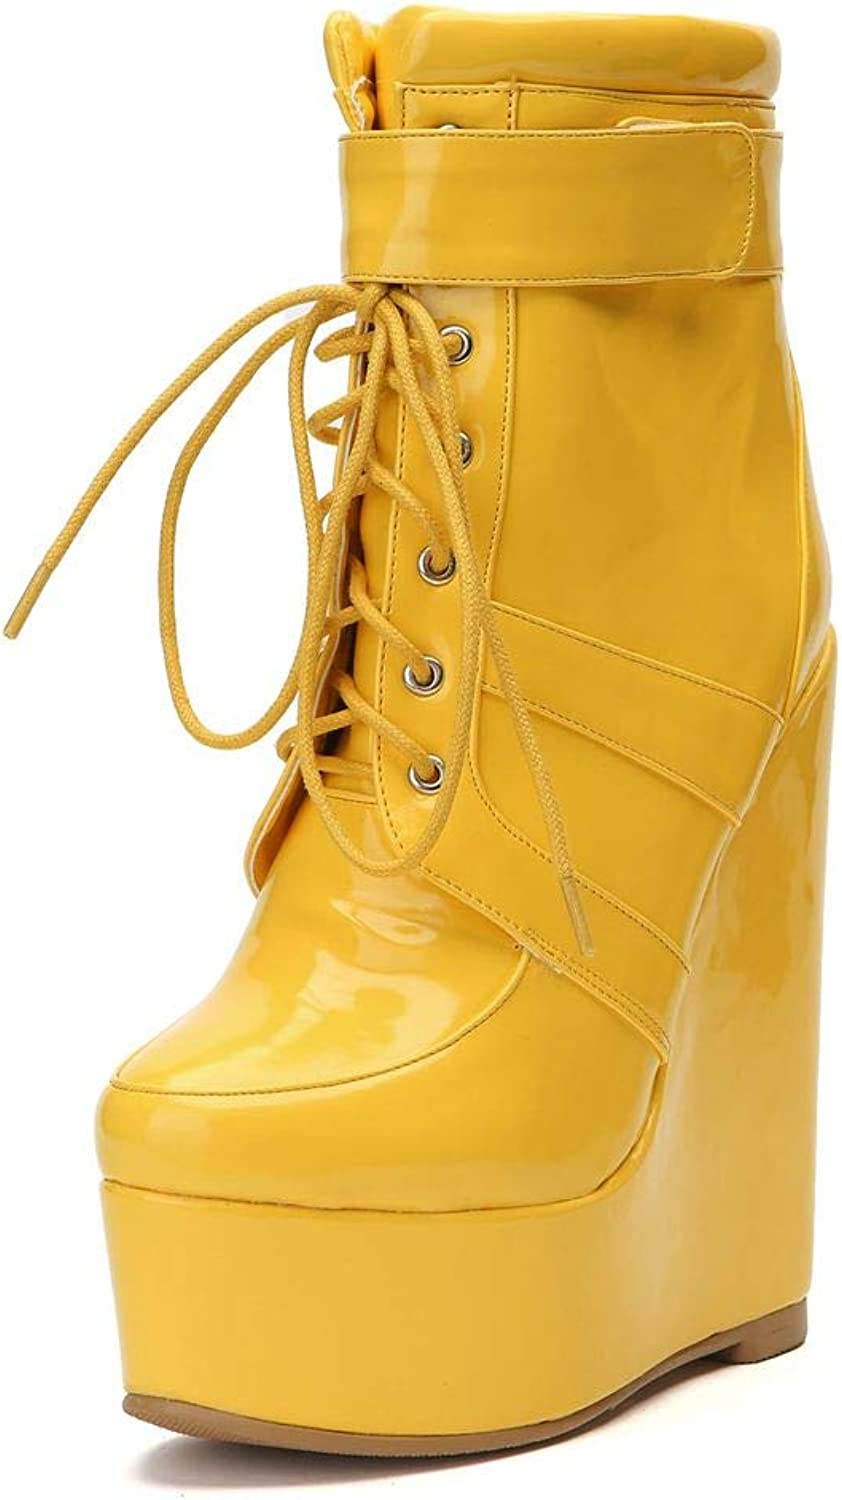 DoraTasia Women's High Top Platform Wedges Ankle Boots Lace-up High Heel Booties